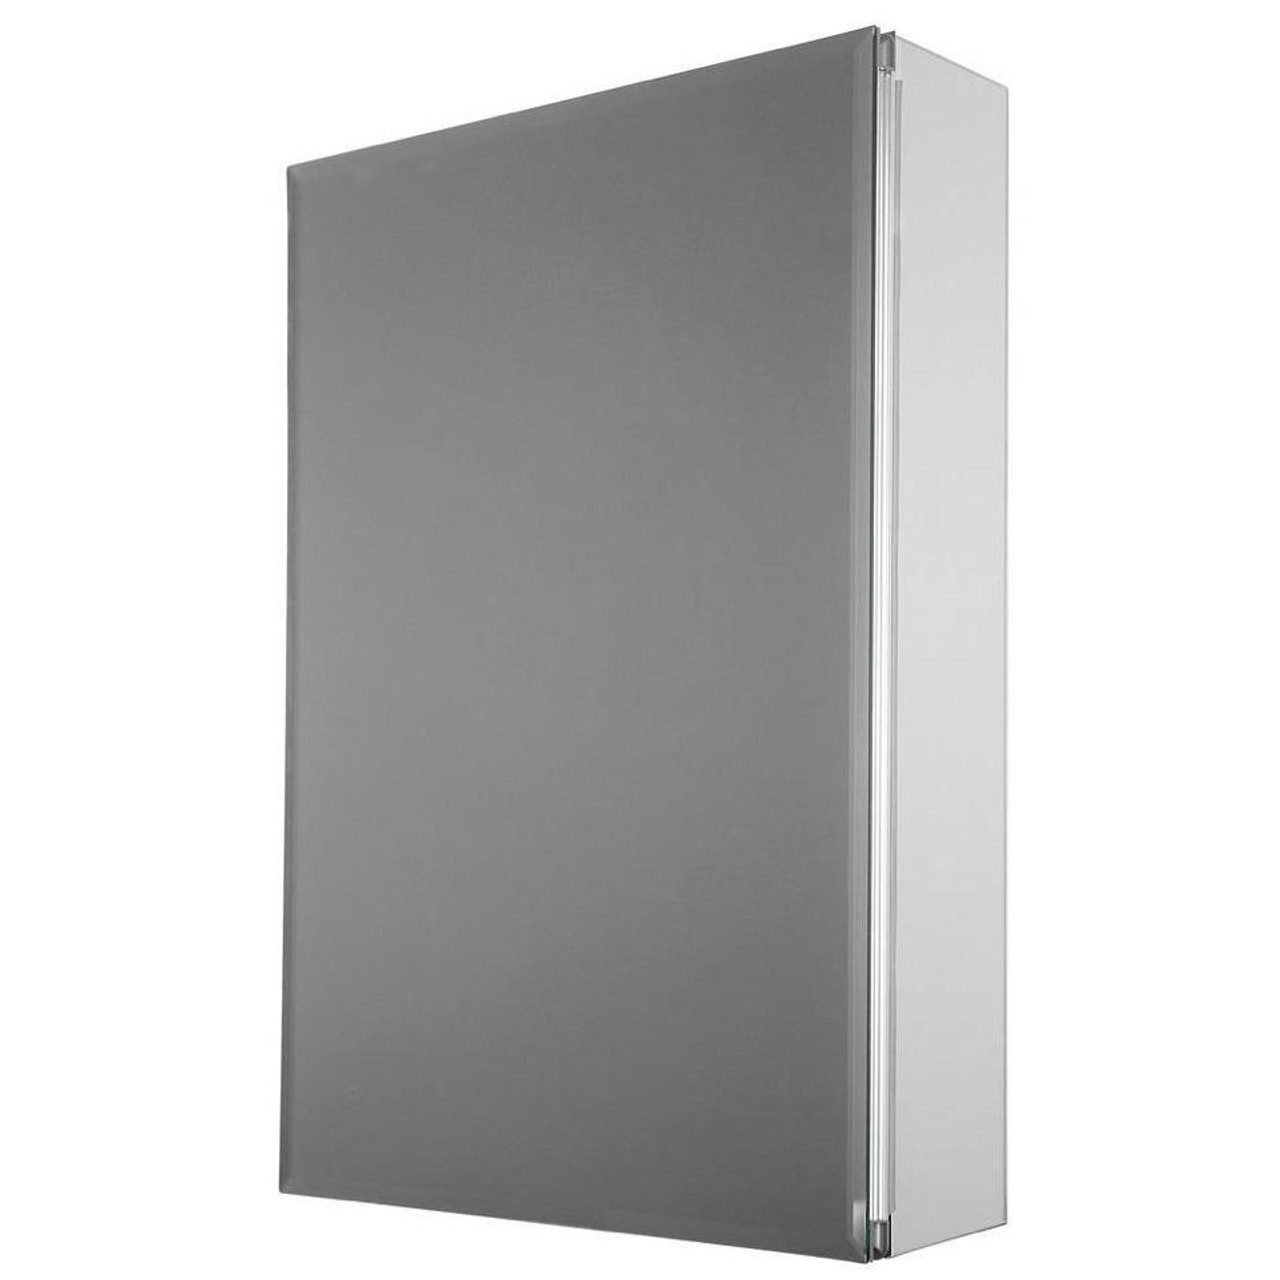 15 in. x 26 in. Recessed or Surface Mount Medicine Cabinet with Beveled Mirror (PE-511275)